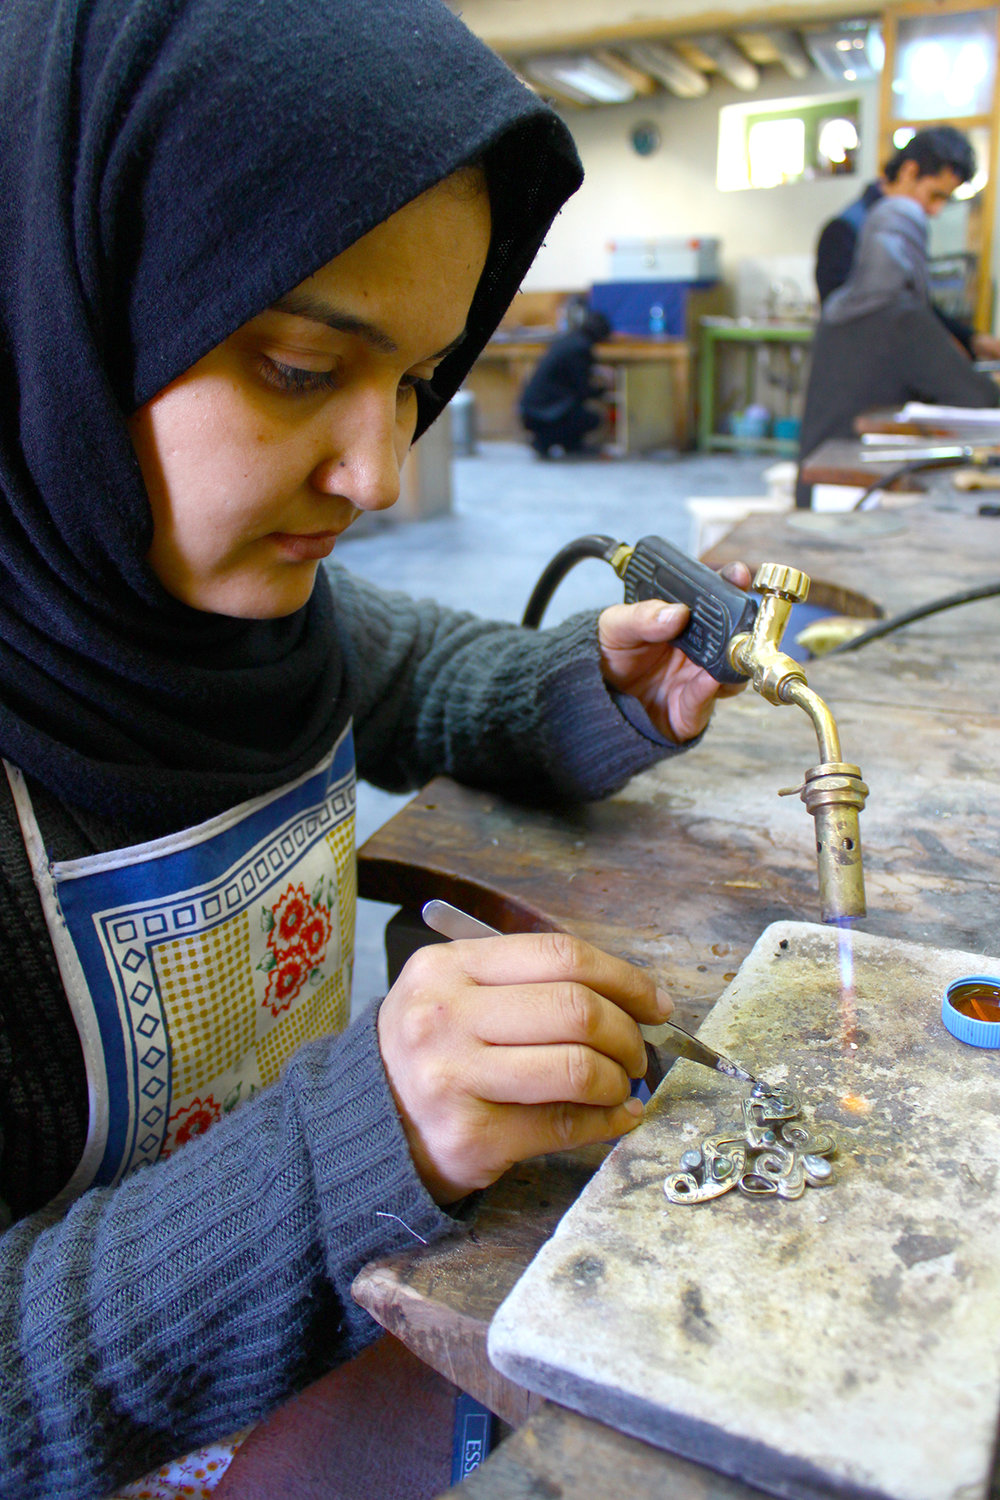 Artisan: Saeeda - After the fall of the Taliban, Saeeda was able to continue her education in Afghanistan. She enrolled at the Turquoise Mountain Institute, where she fell in love with the art of jewelry making.